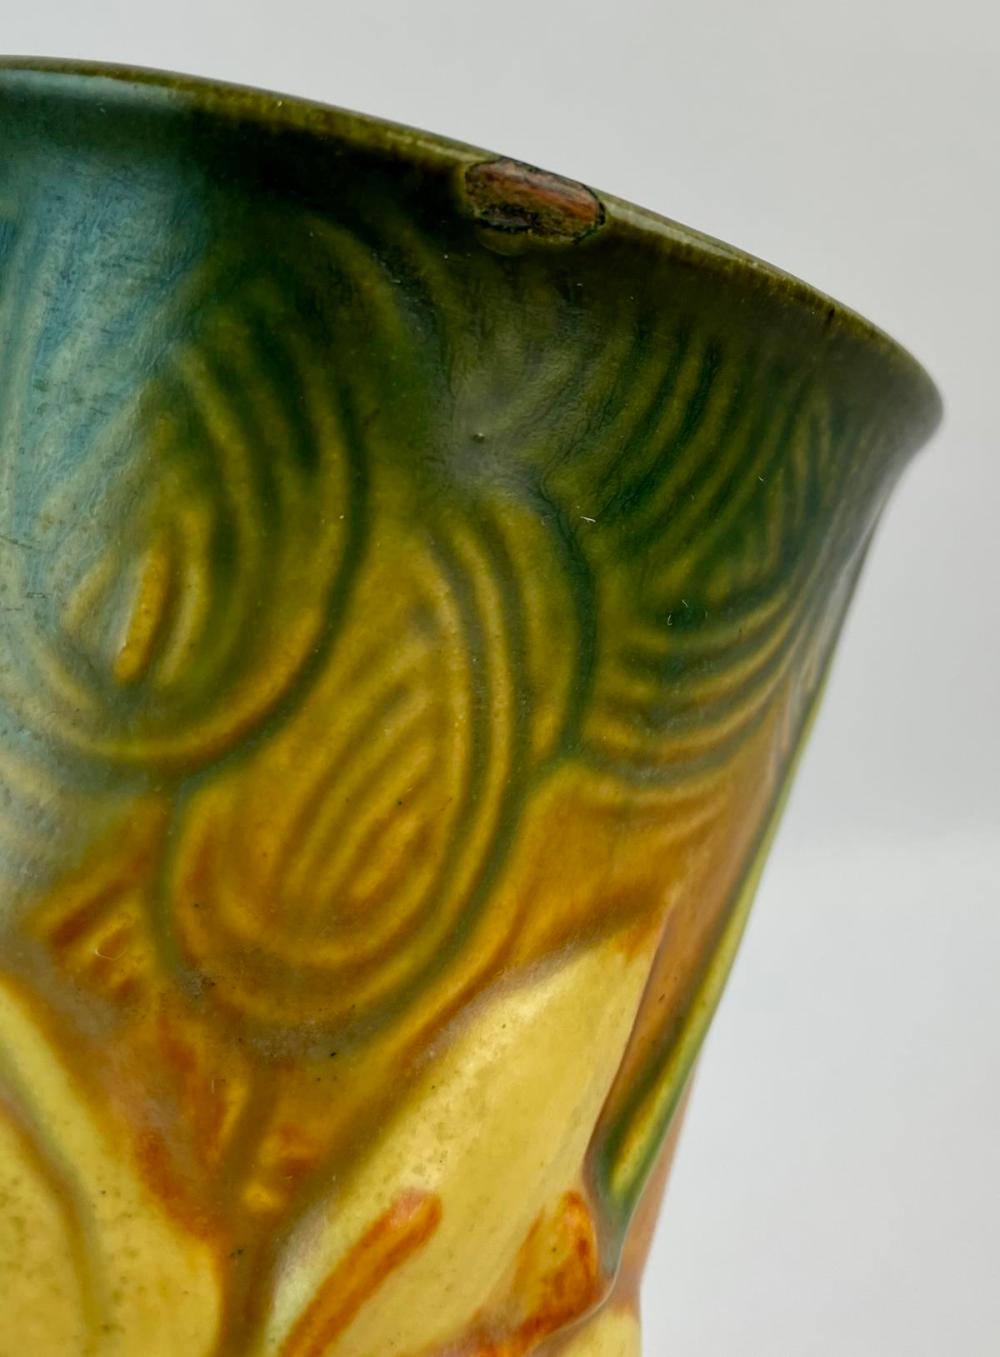 "Vintage 1940's Roseville Pottery Zephyr Lily Brown and Green 131-7"" Two Handle Art Pottery Vase"